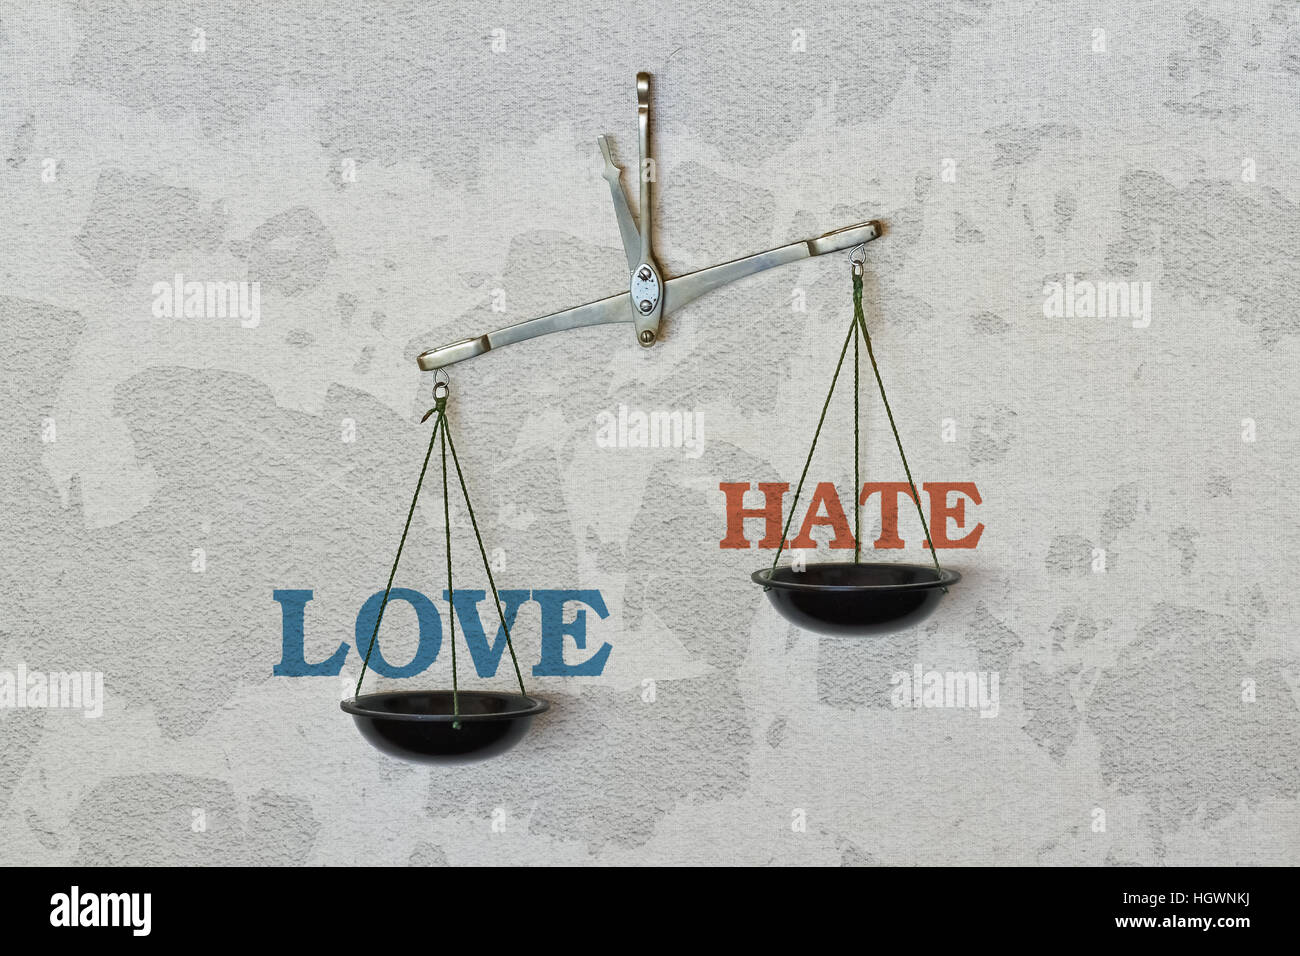 Words Love and Hate and a balance on bright background - Stock Image